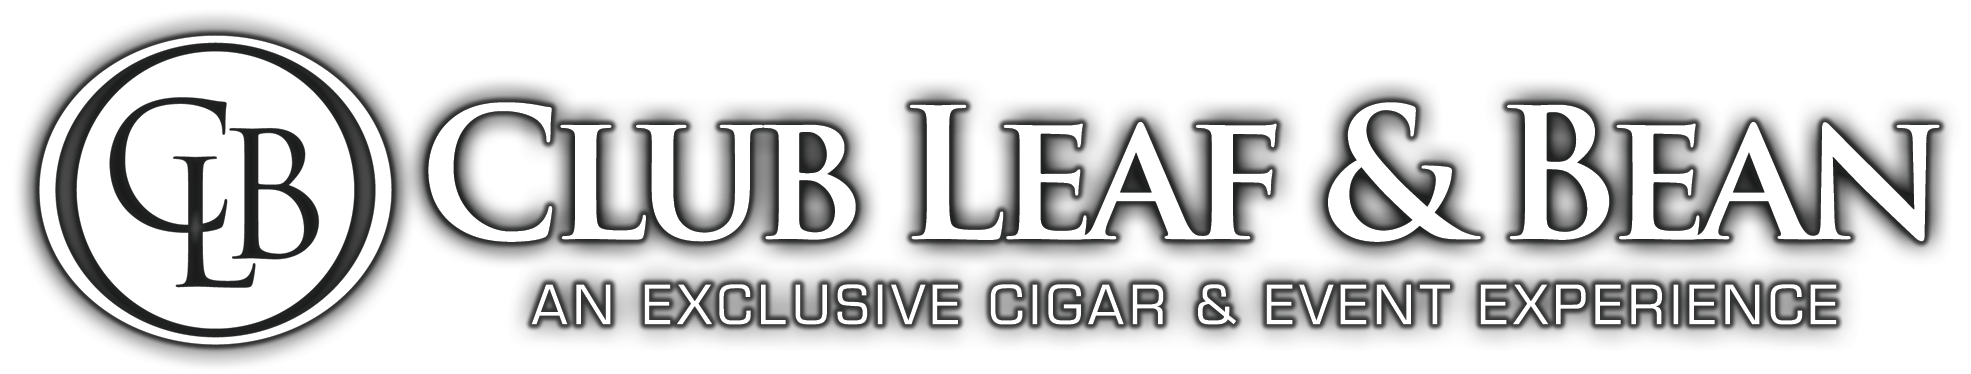 Club Leaf & Bean | An Exclusive Cigar & Event Experience | Private, Members-Only Cigar & Social Clubs